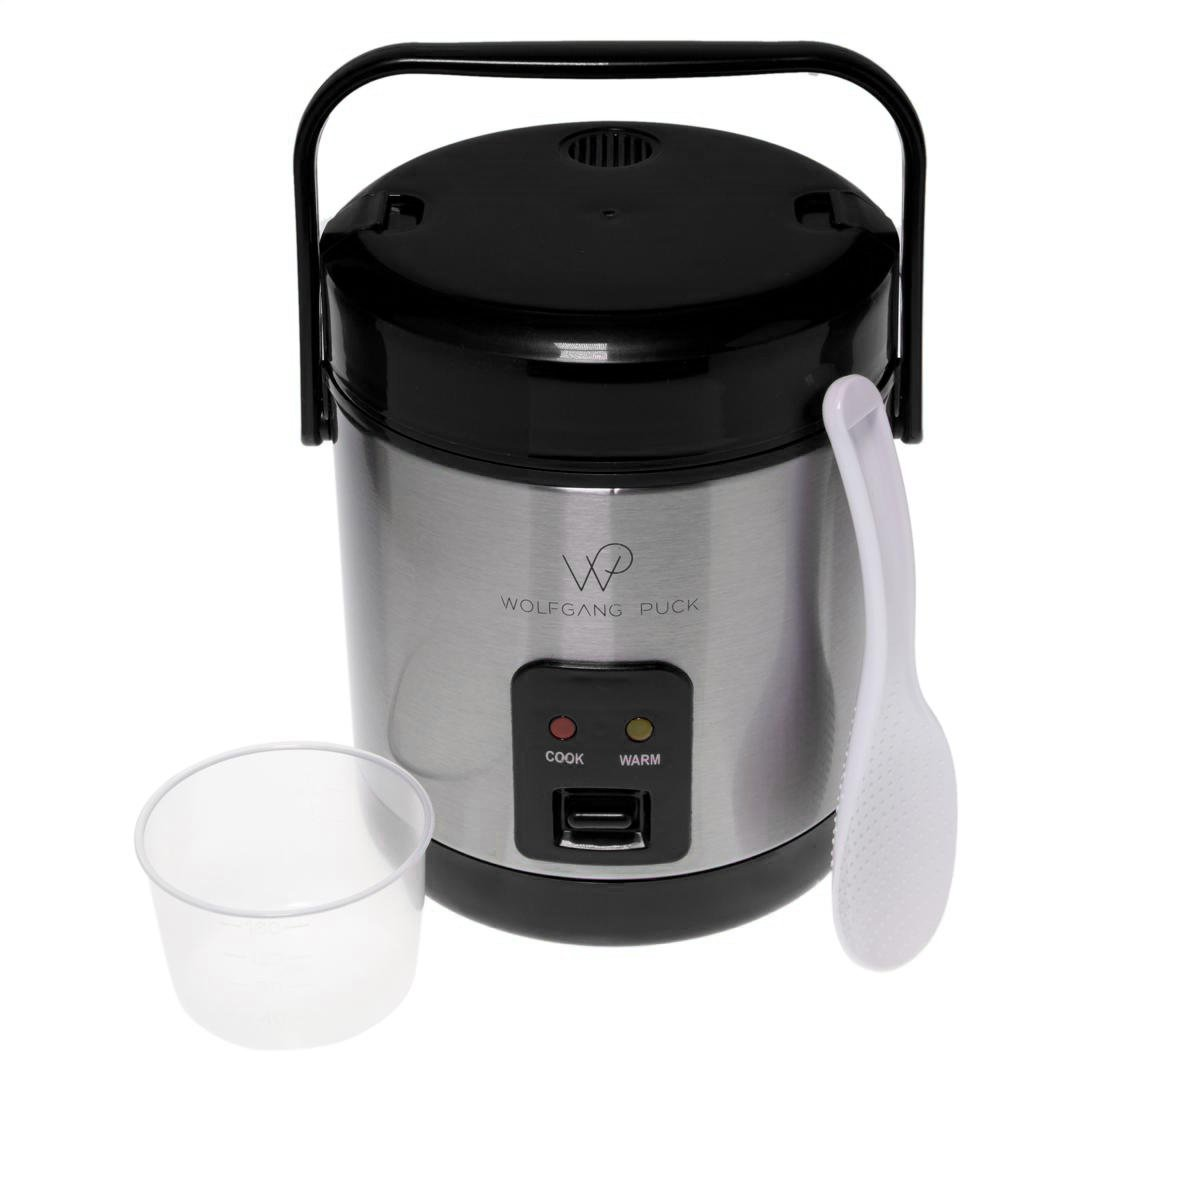 Wolfgang Puck Stainless Steel 1.5-Cup Rice Cooker with Recipes - Black